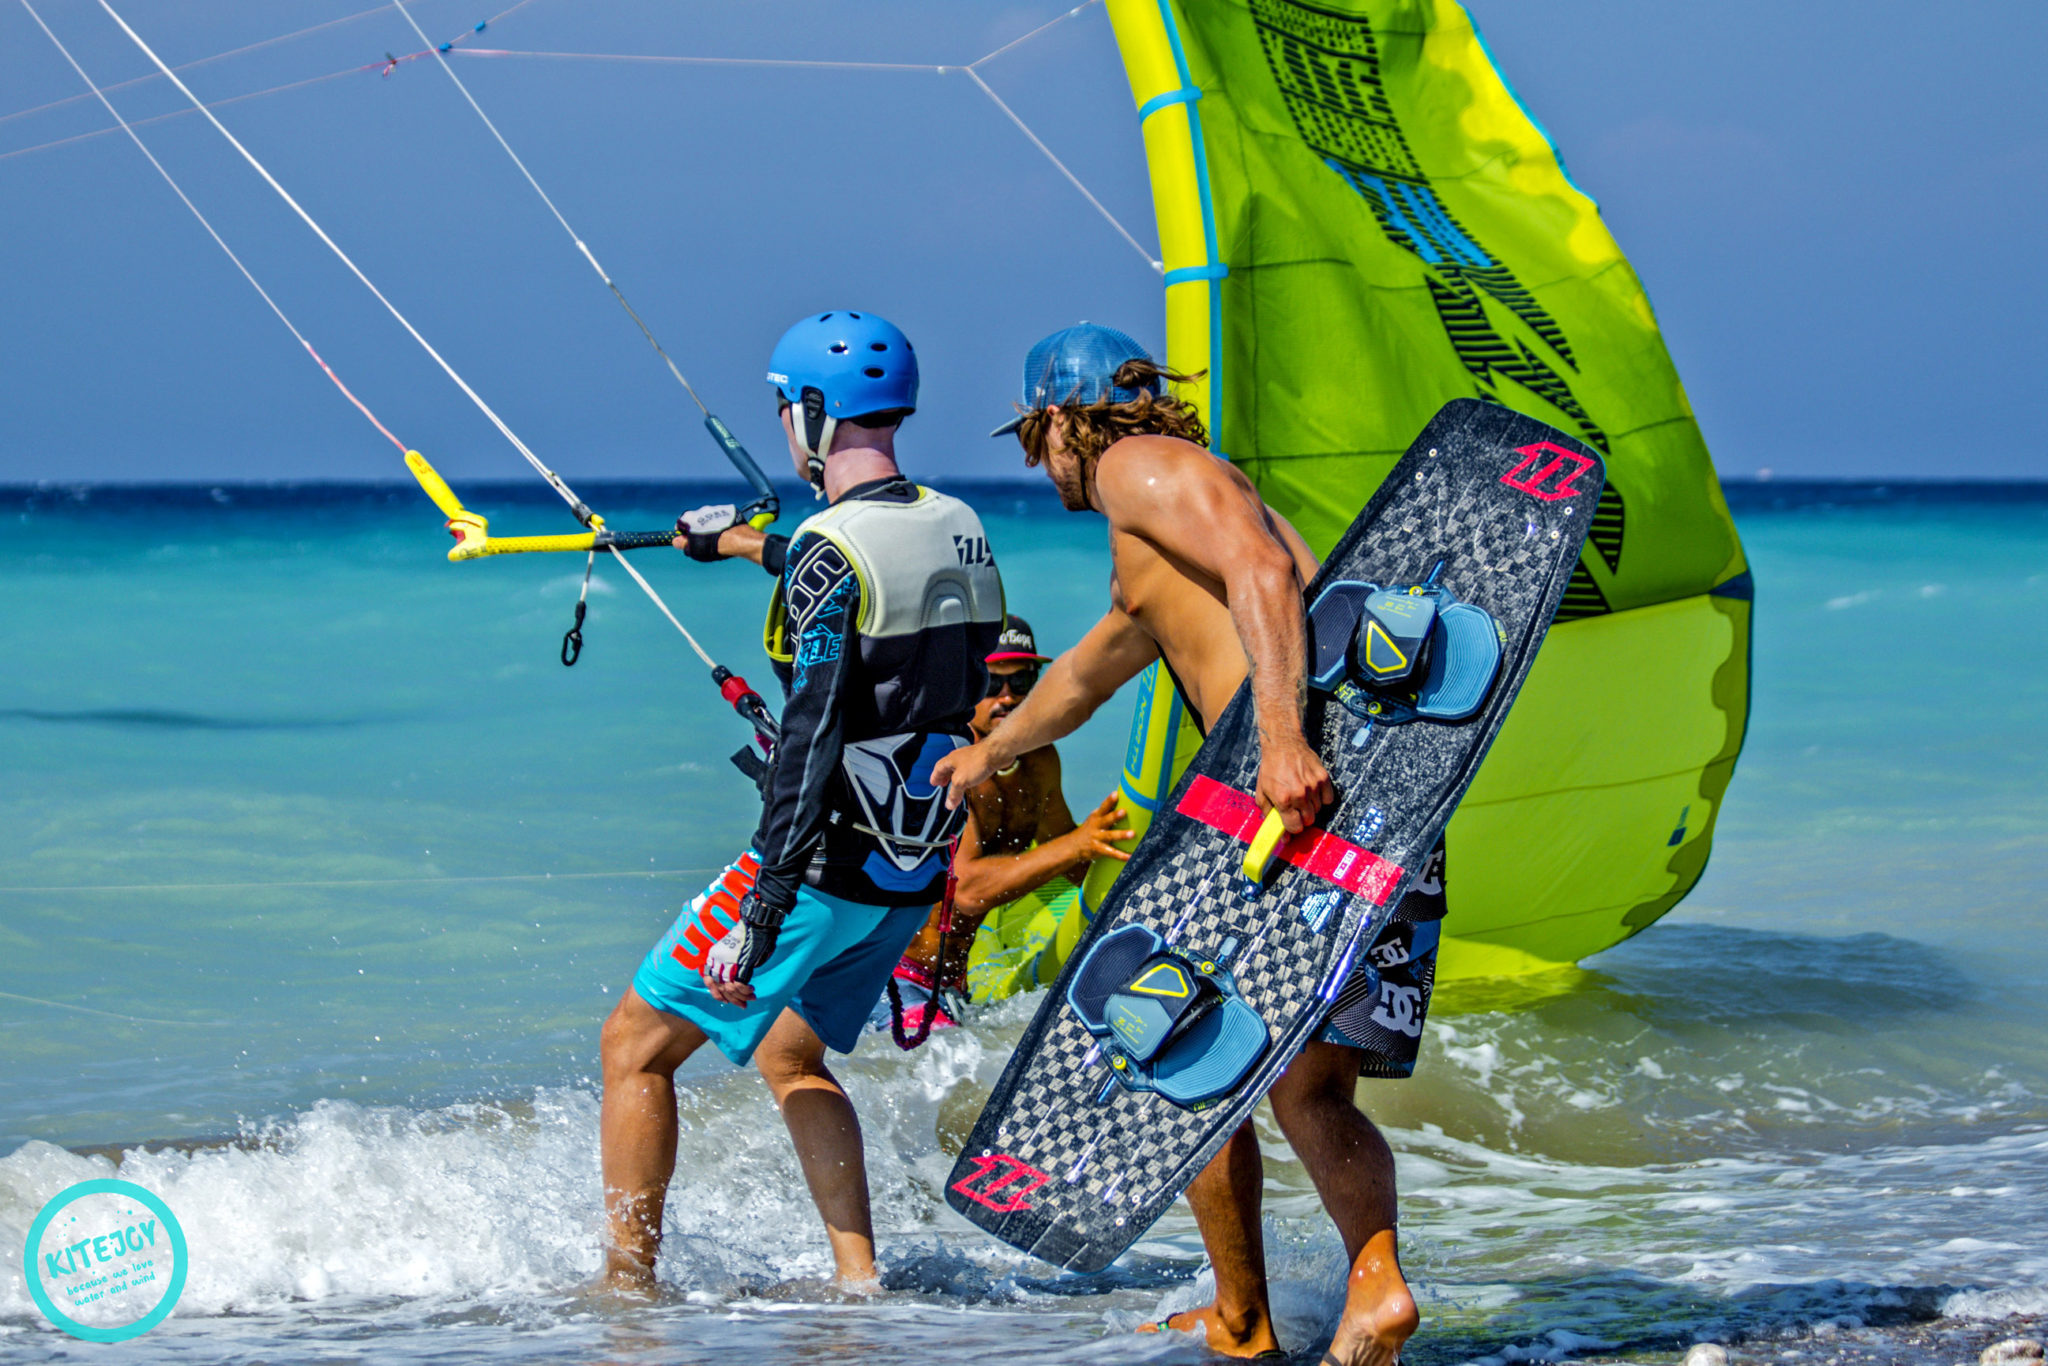 Rhodes kitesurf course in Kremasti: Greece kitesurfing lessons